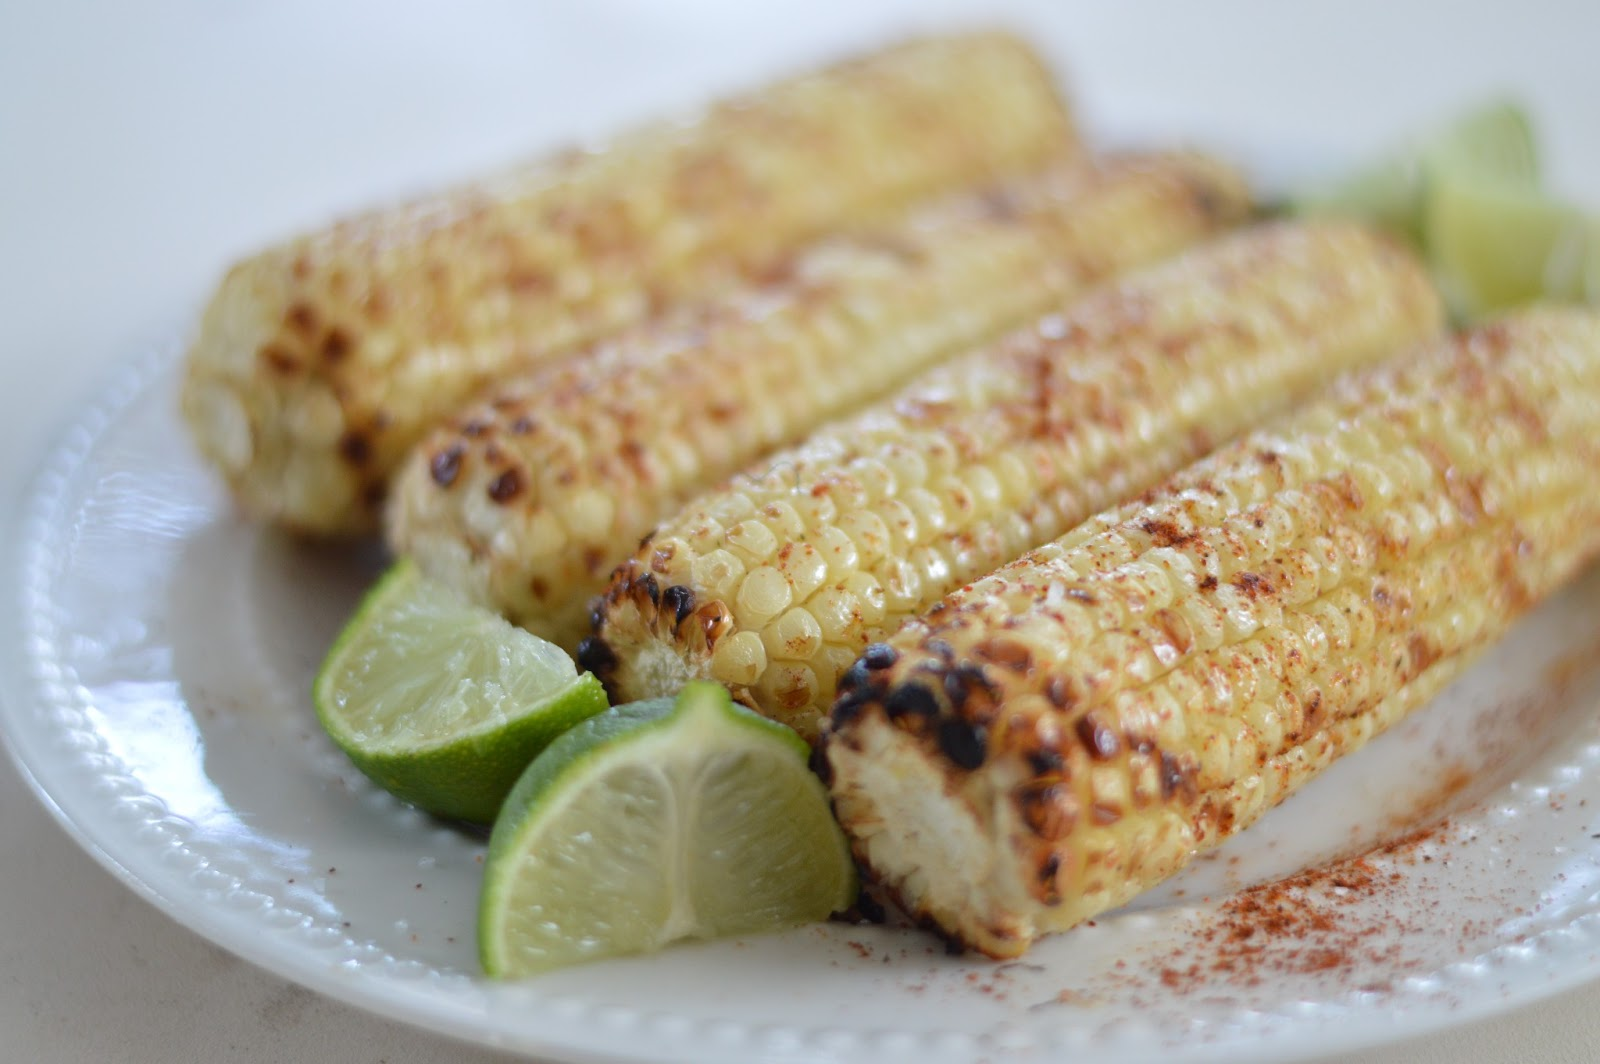 Grilled Corn with Lime and Chili Powder